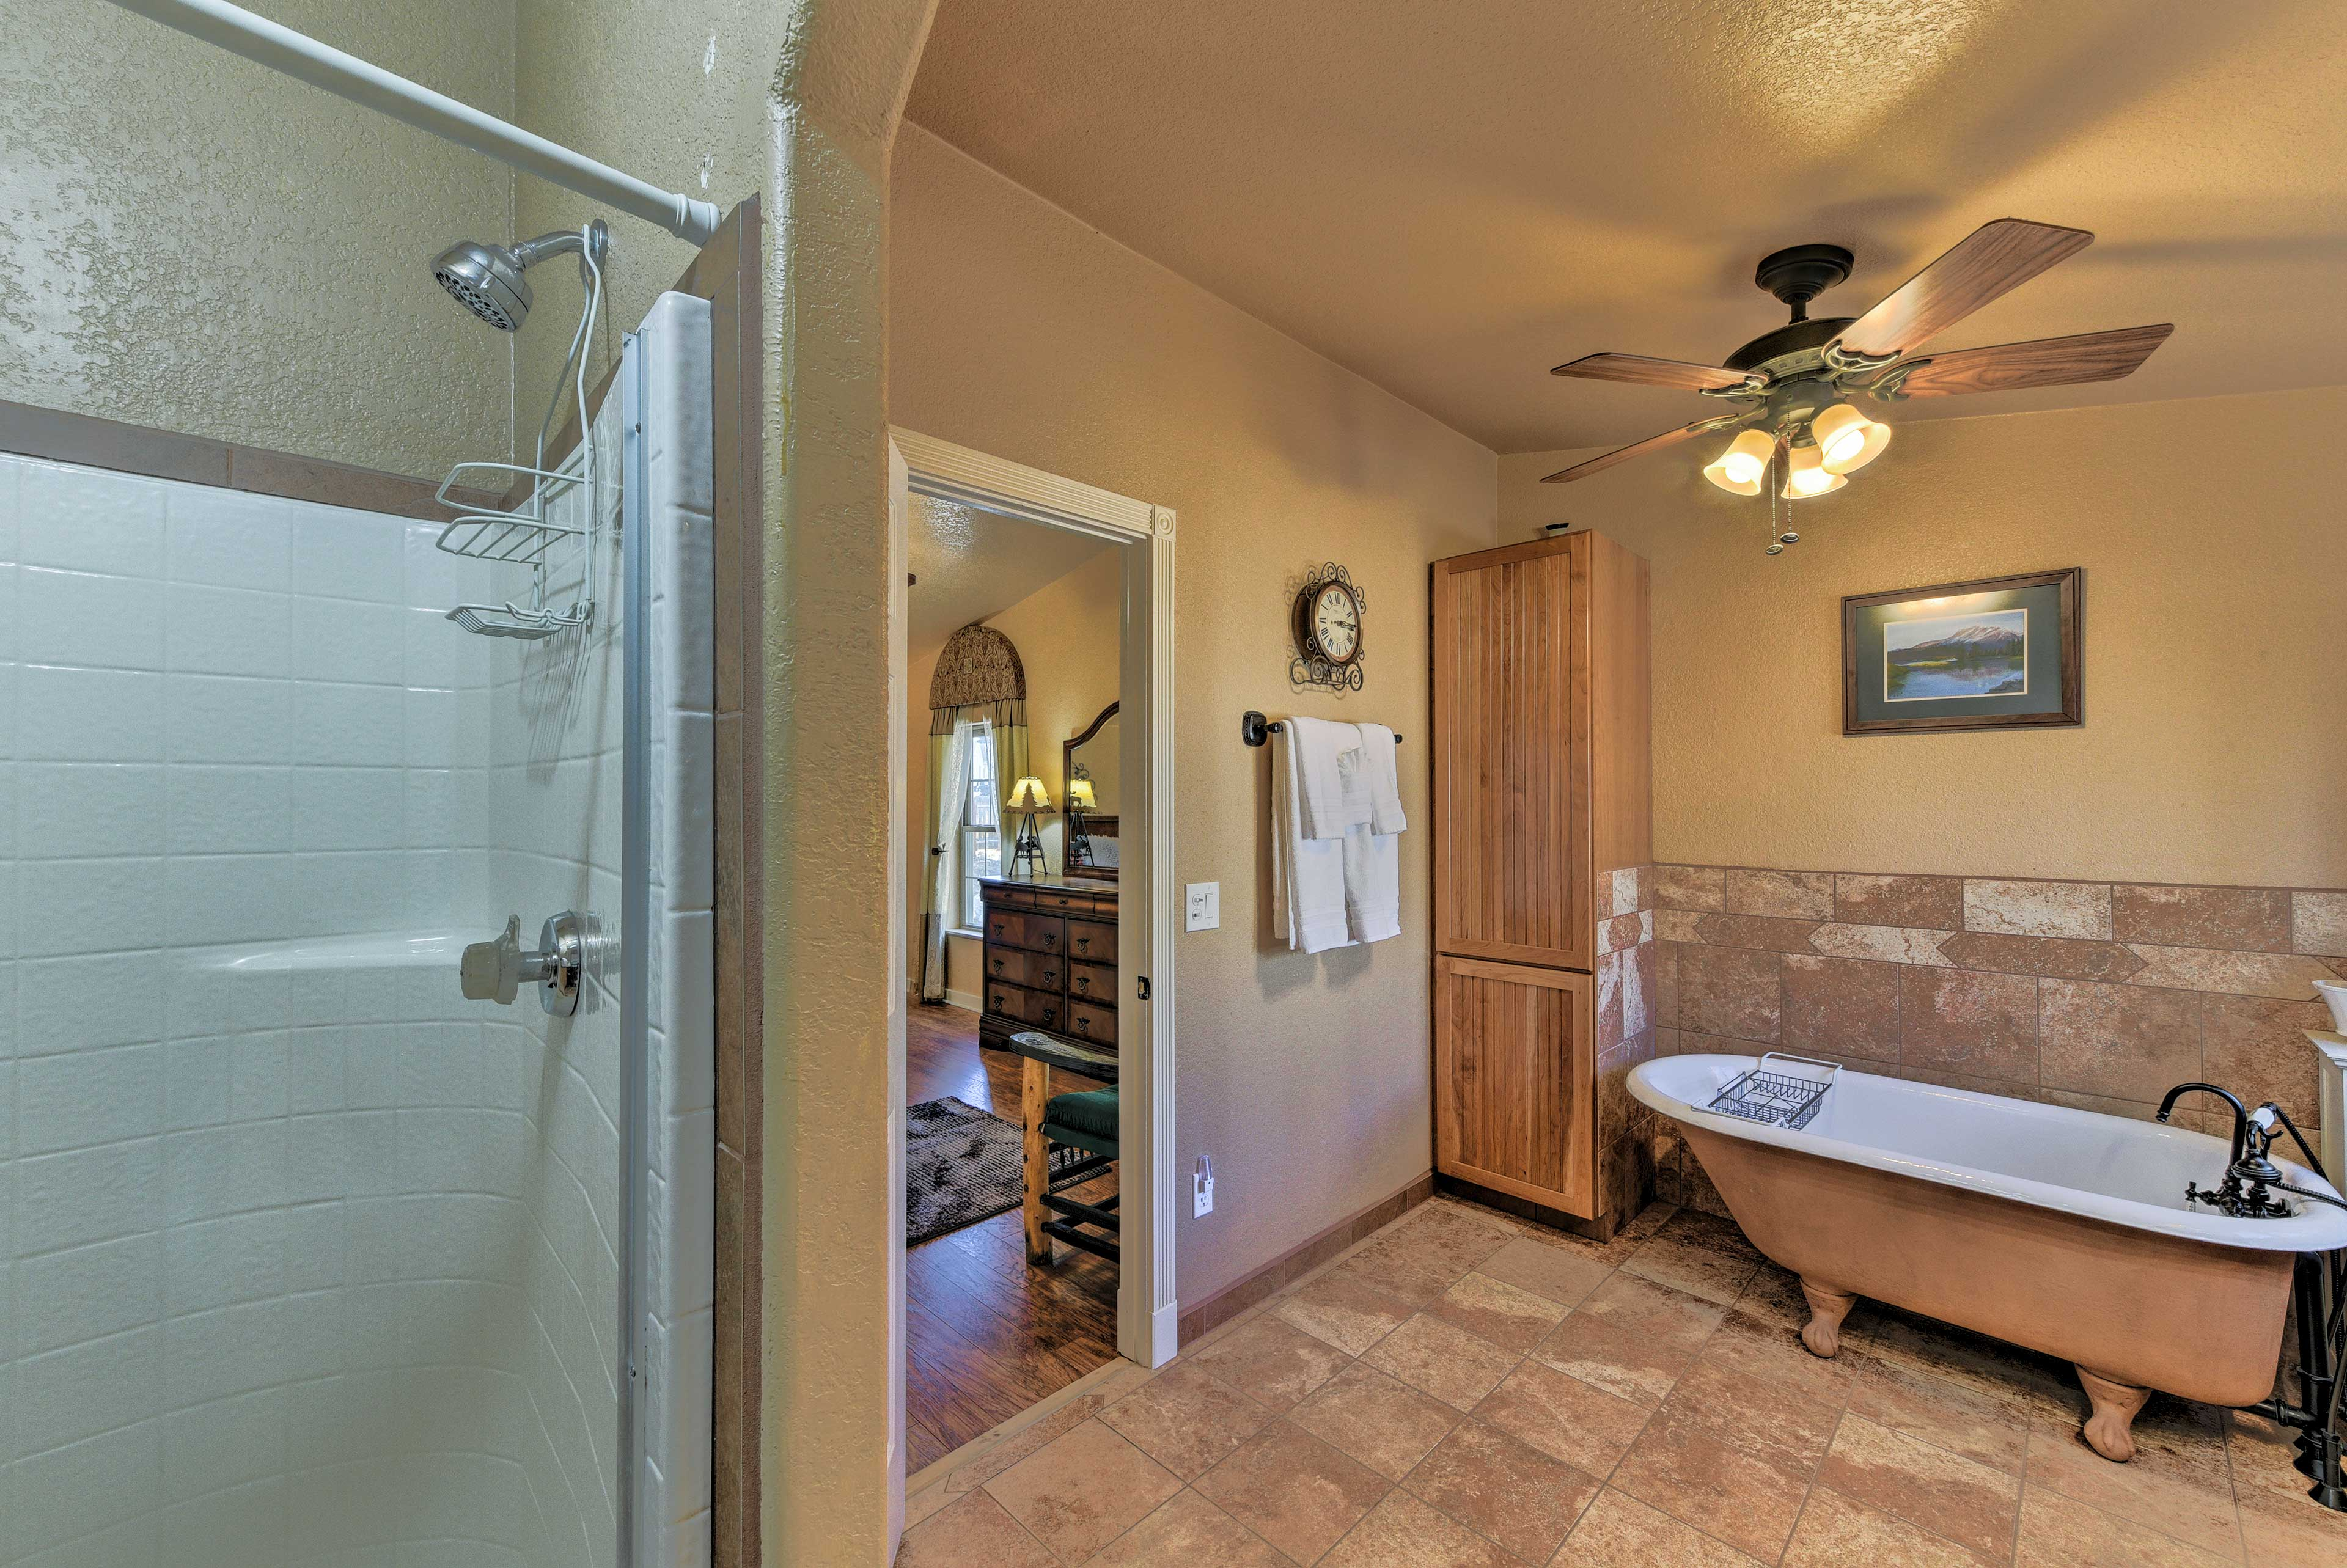 The master bath features a walk-in shower & an antique claw-foot tub.